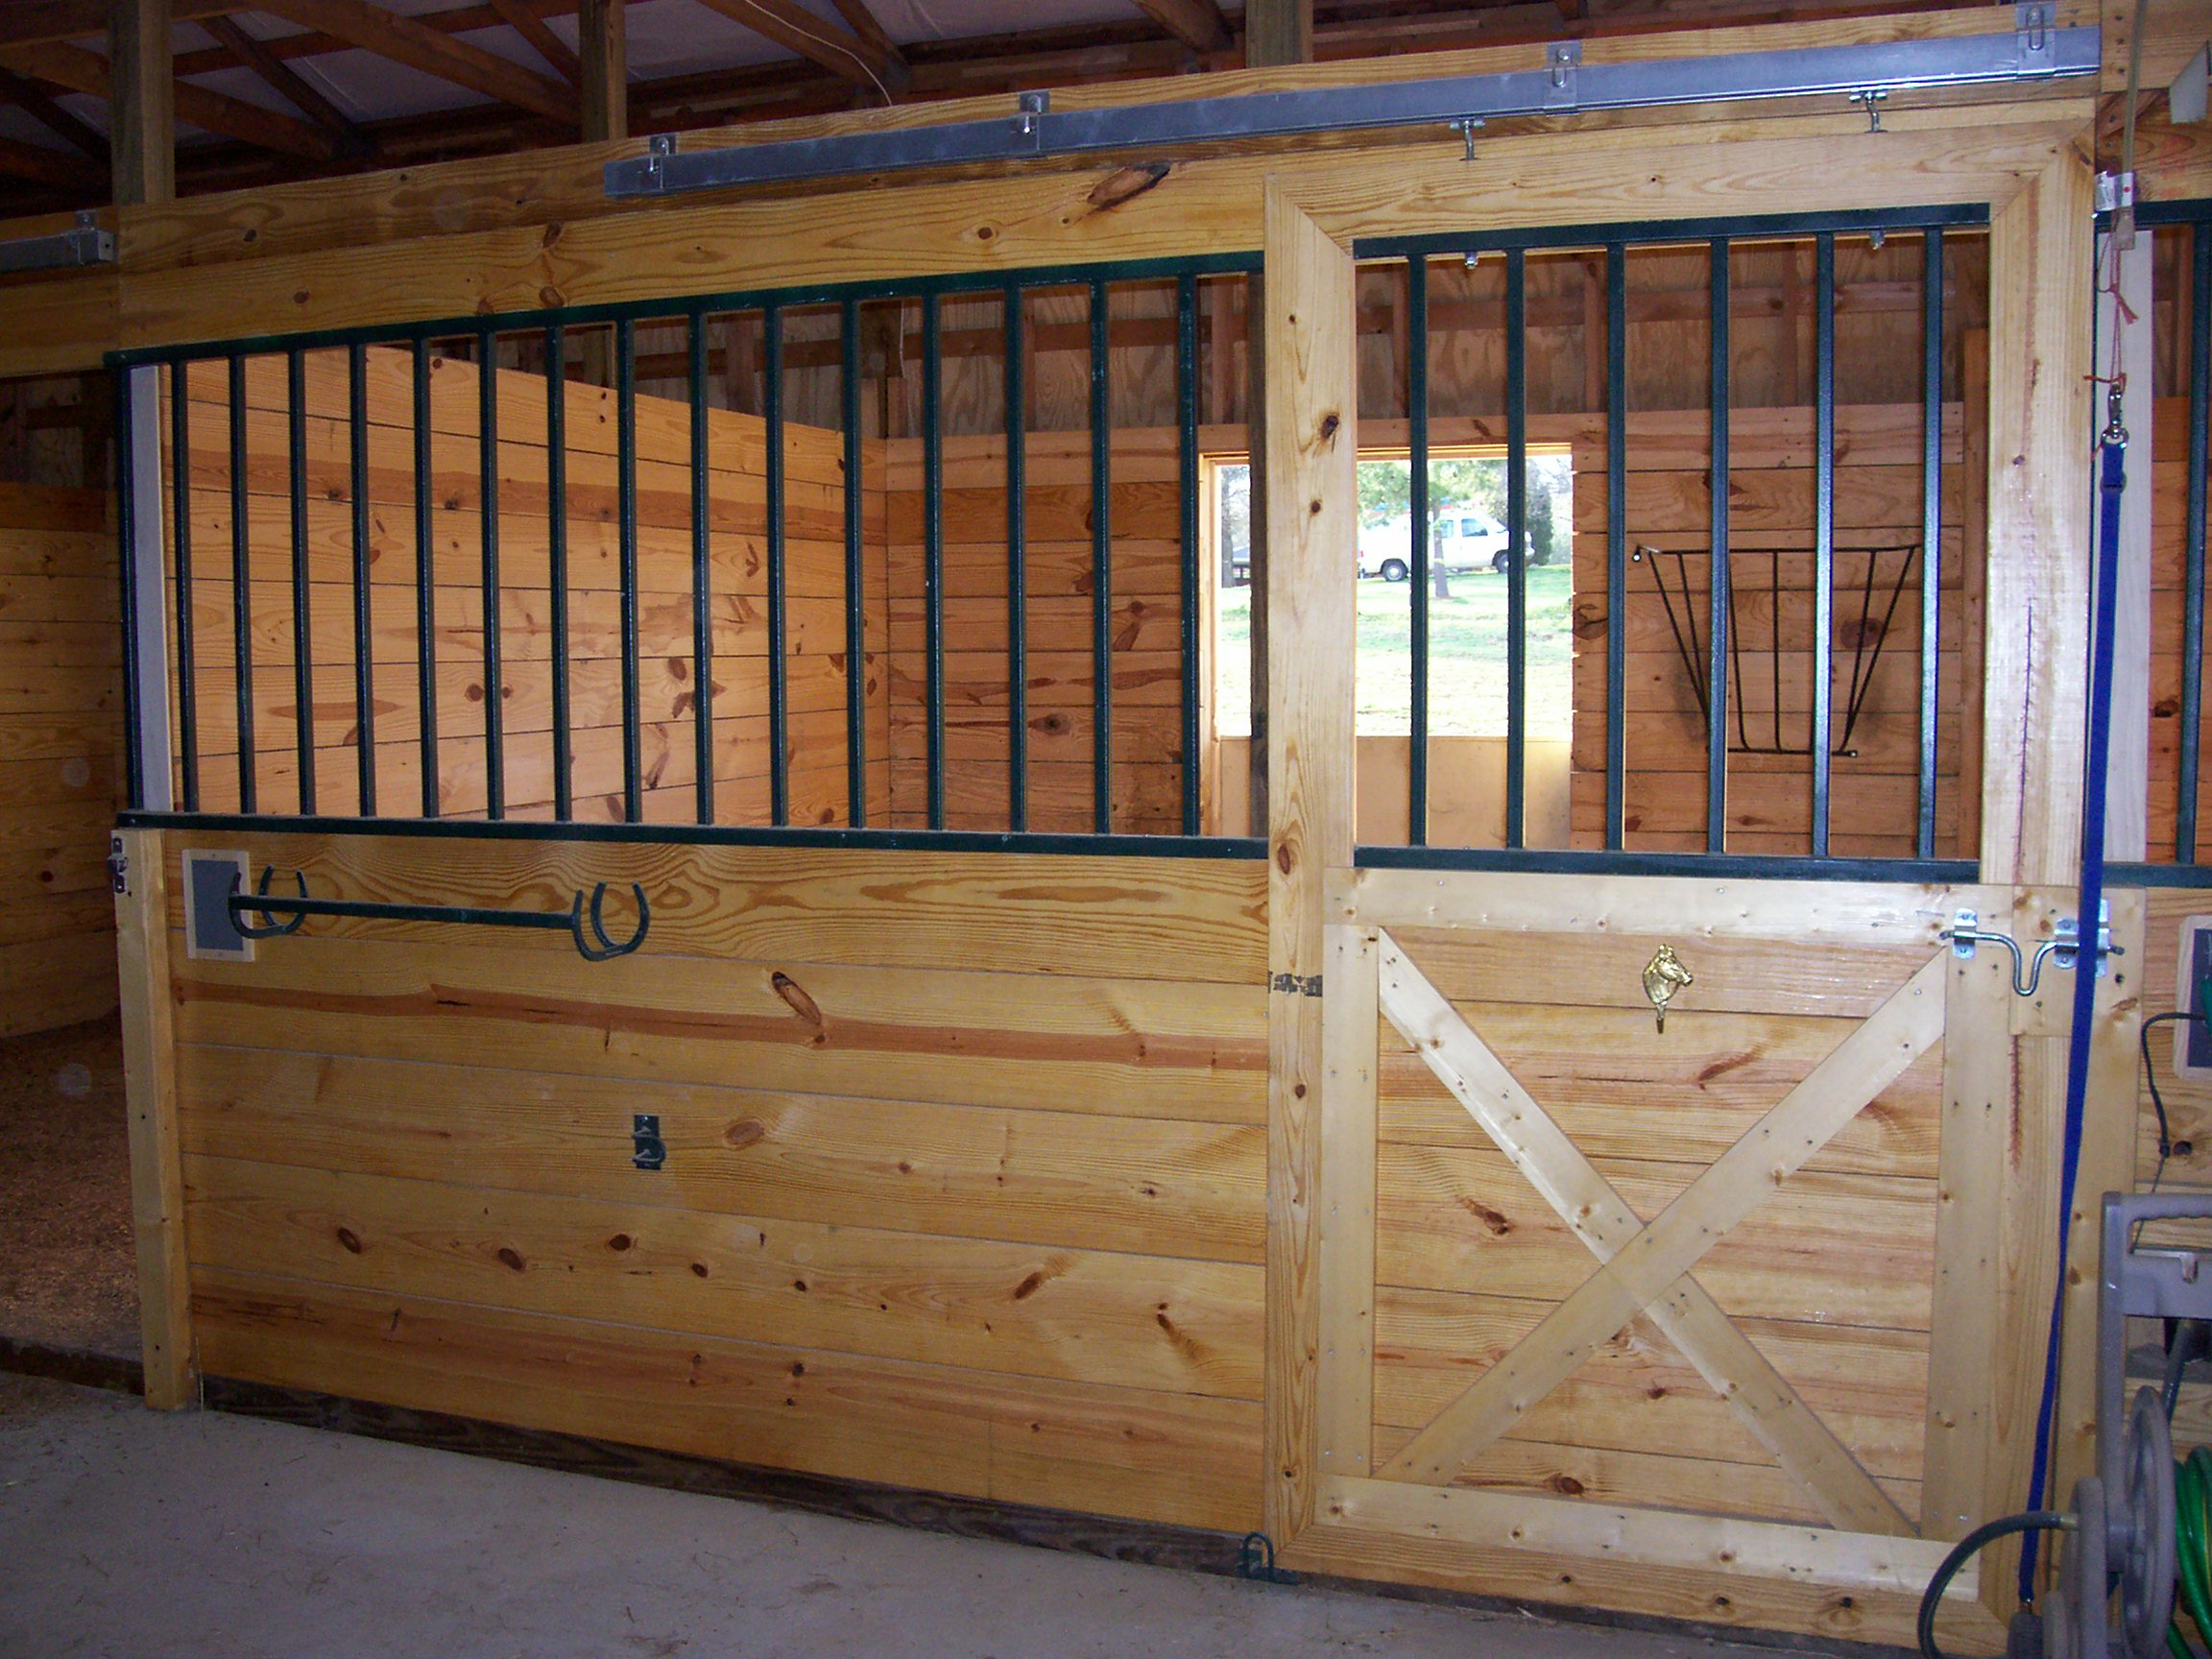 M and R Stables - Clean Stall in Barn